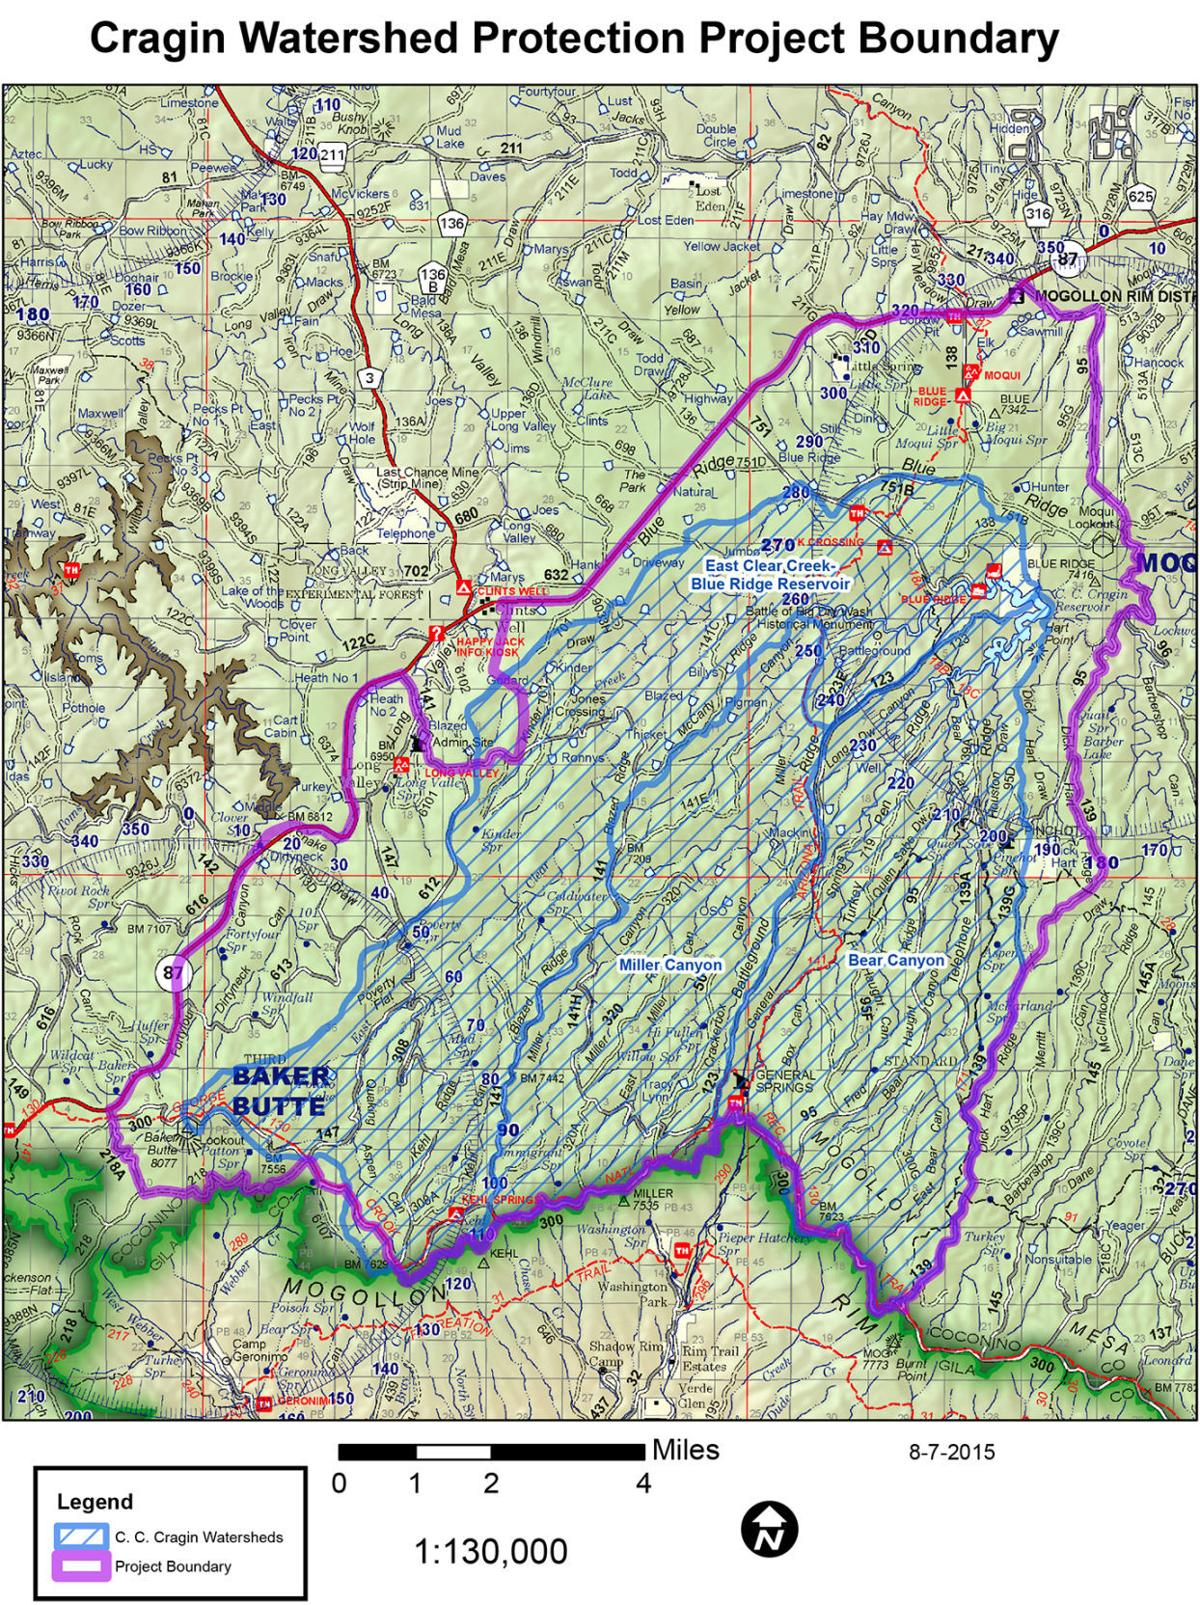 Map of C.C. Craigin watershed project